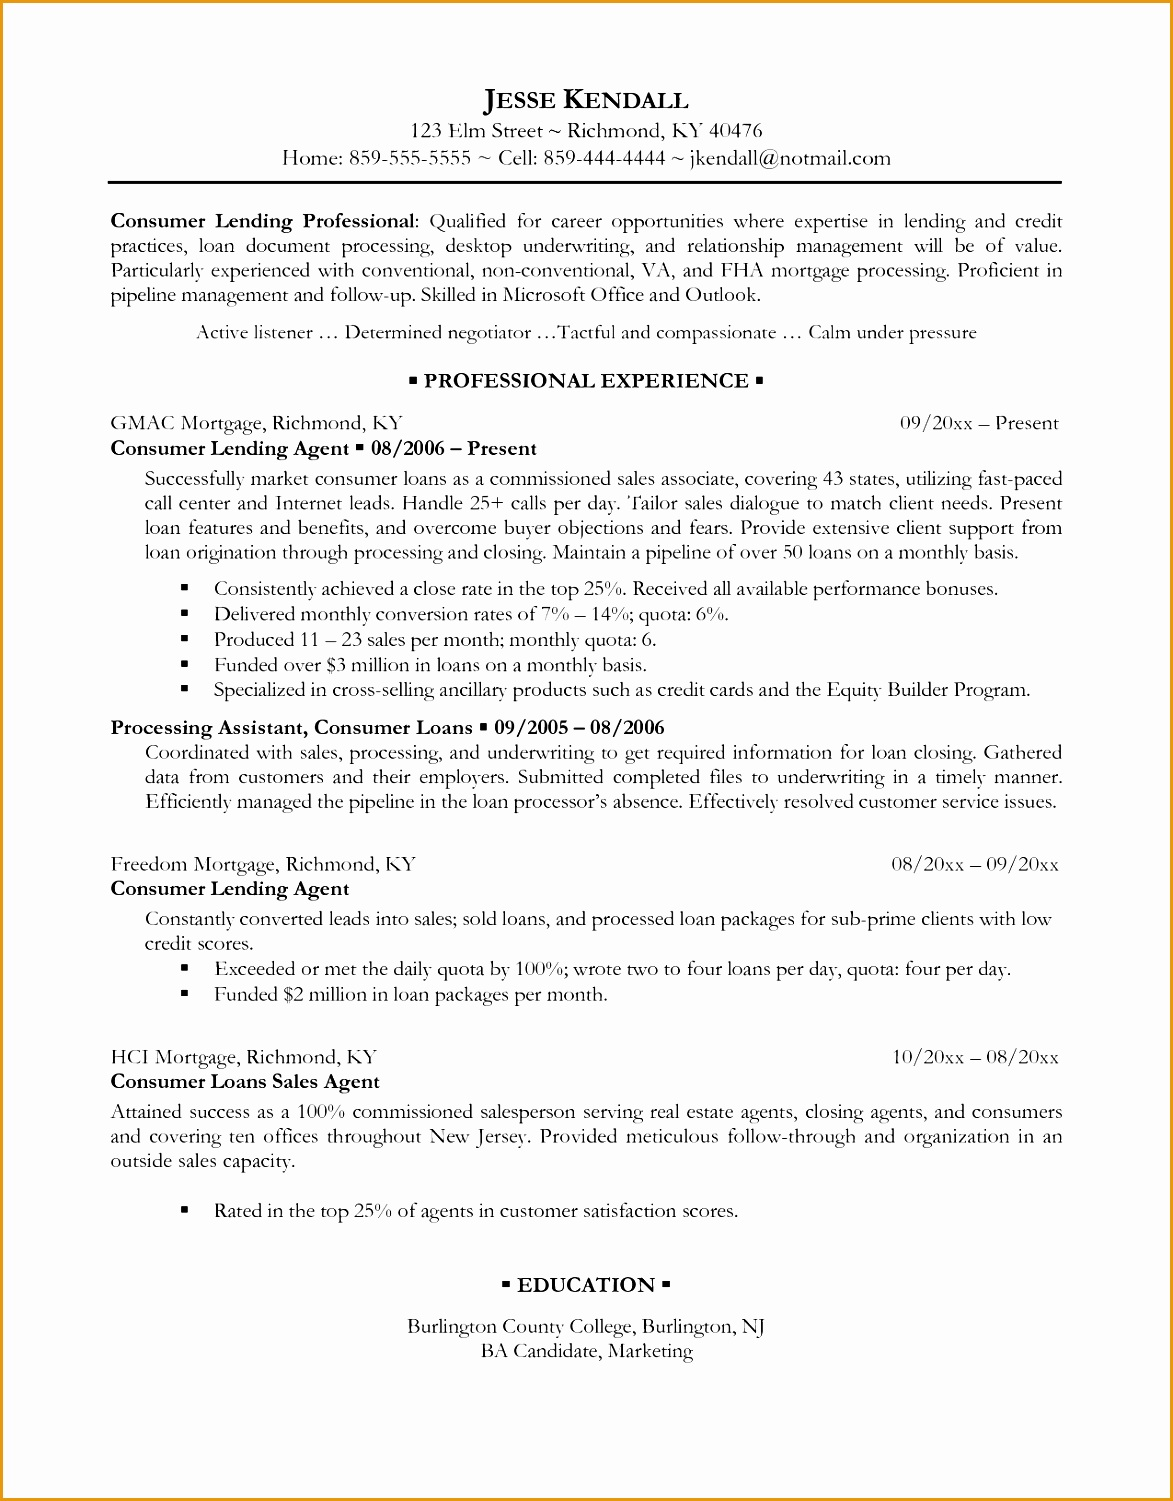 Job Application Cover Letter Template Word Food Service Example Rufqik on